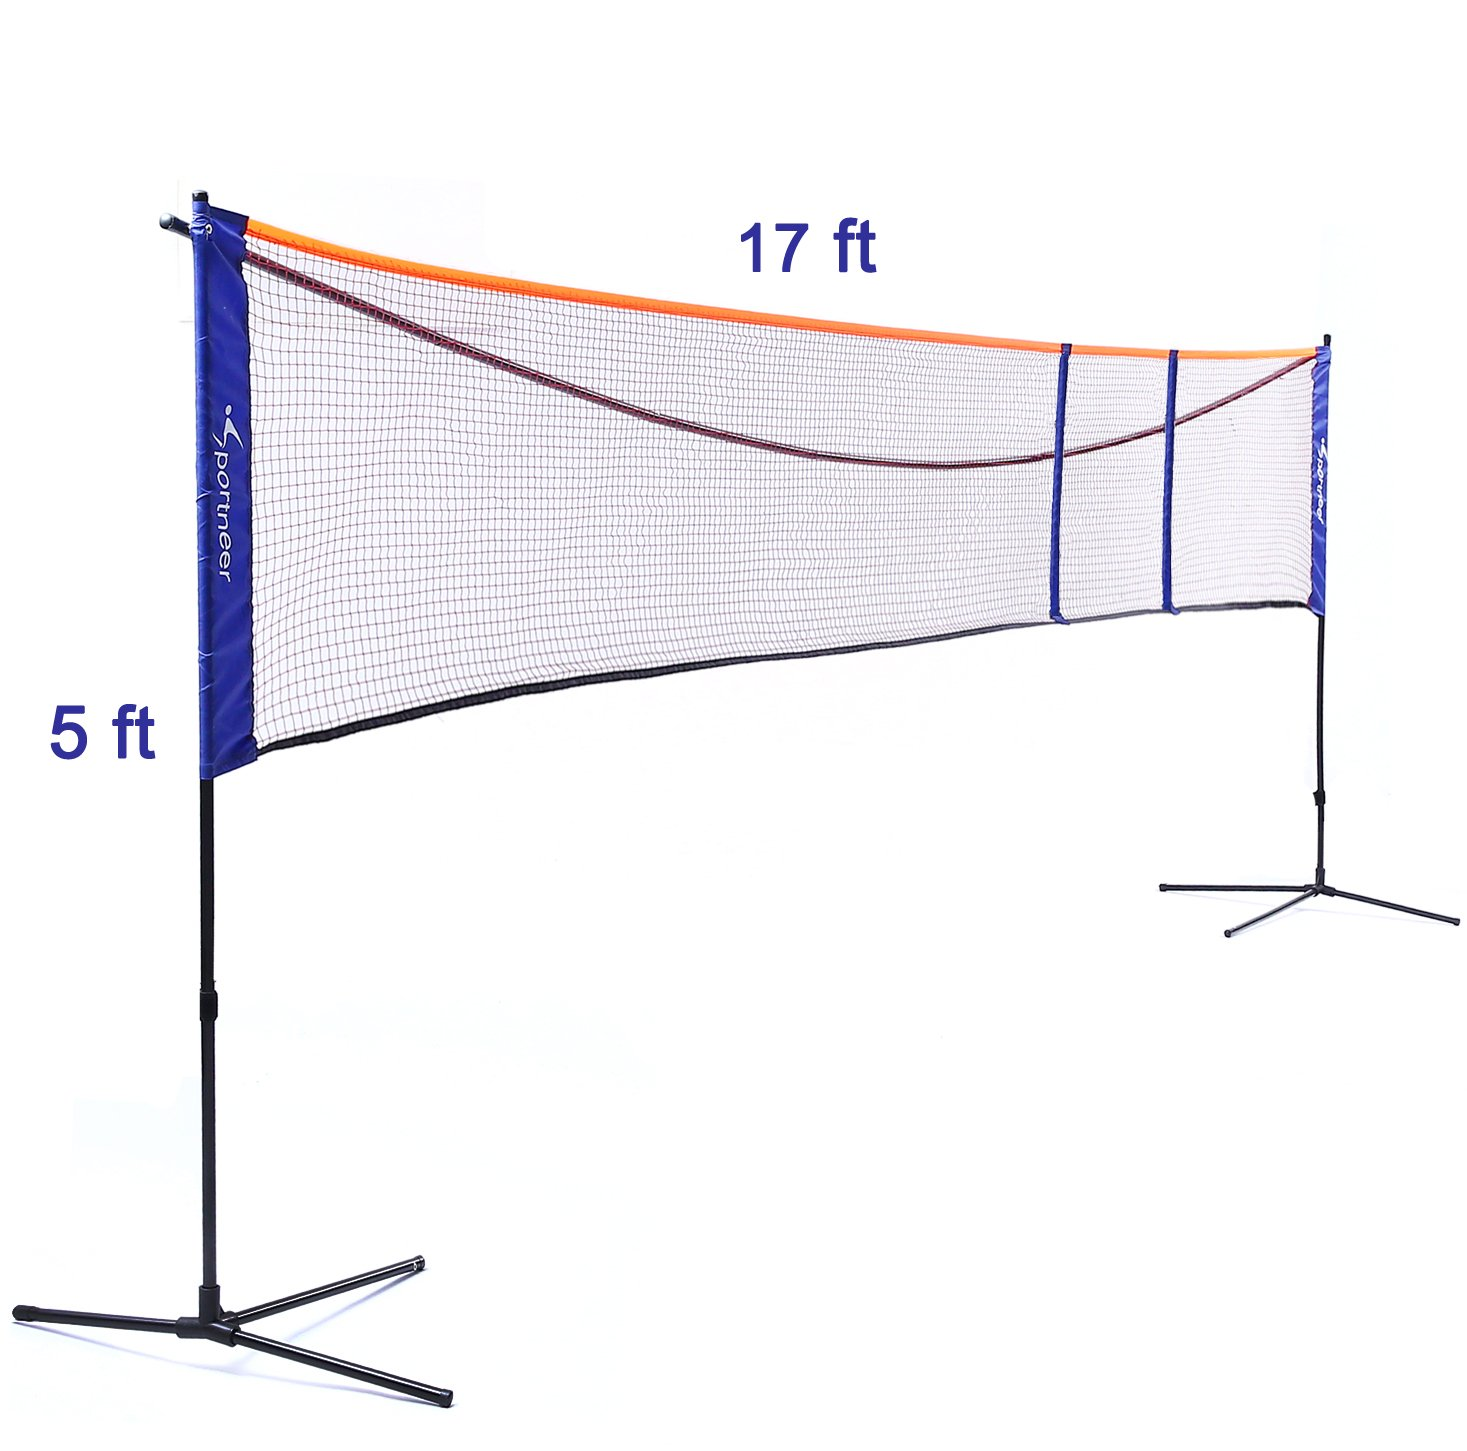 Badminton Net Stand Set Sportneer Adjustable Height(2.5-5ft) Lengh(10.5-17ft) Tennis Volleyball Net Set for Outdoor, Backyard and Beach Game, Bonus Carry Bag